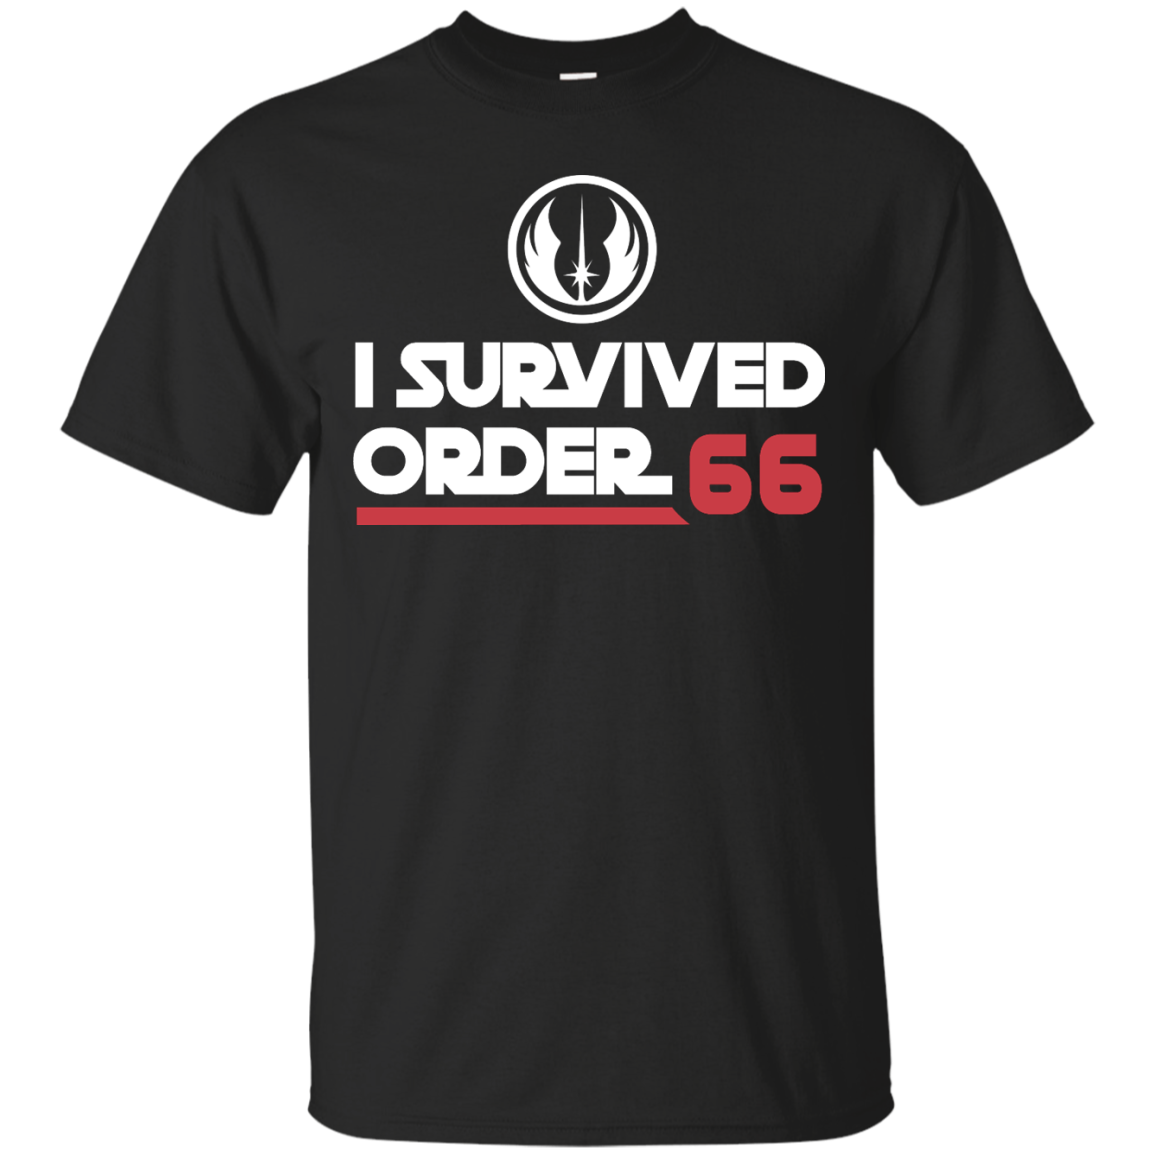 Star Wars T Shirt: I Survived Order 66 Shirt